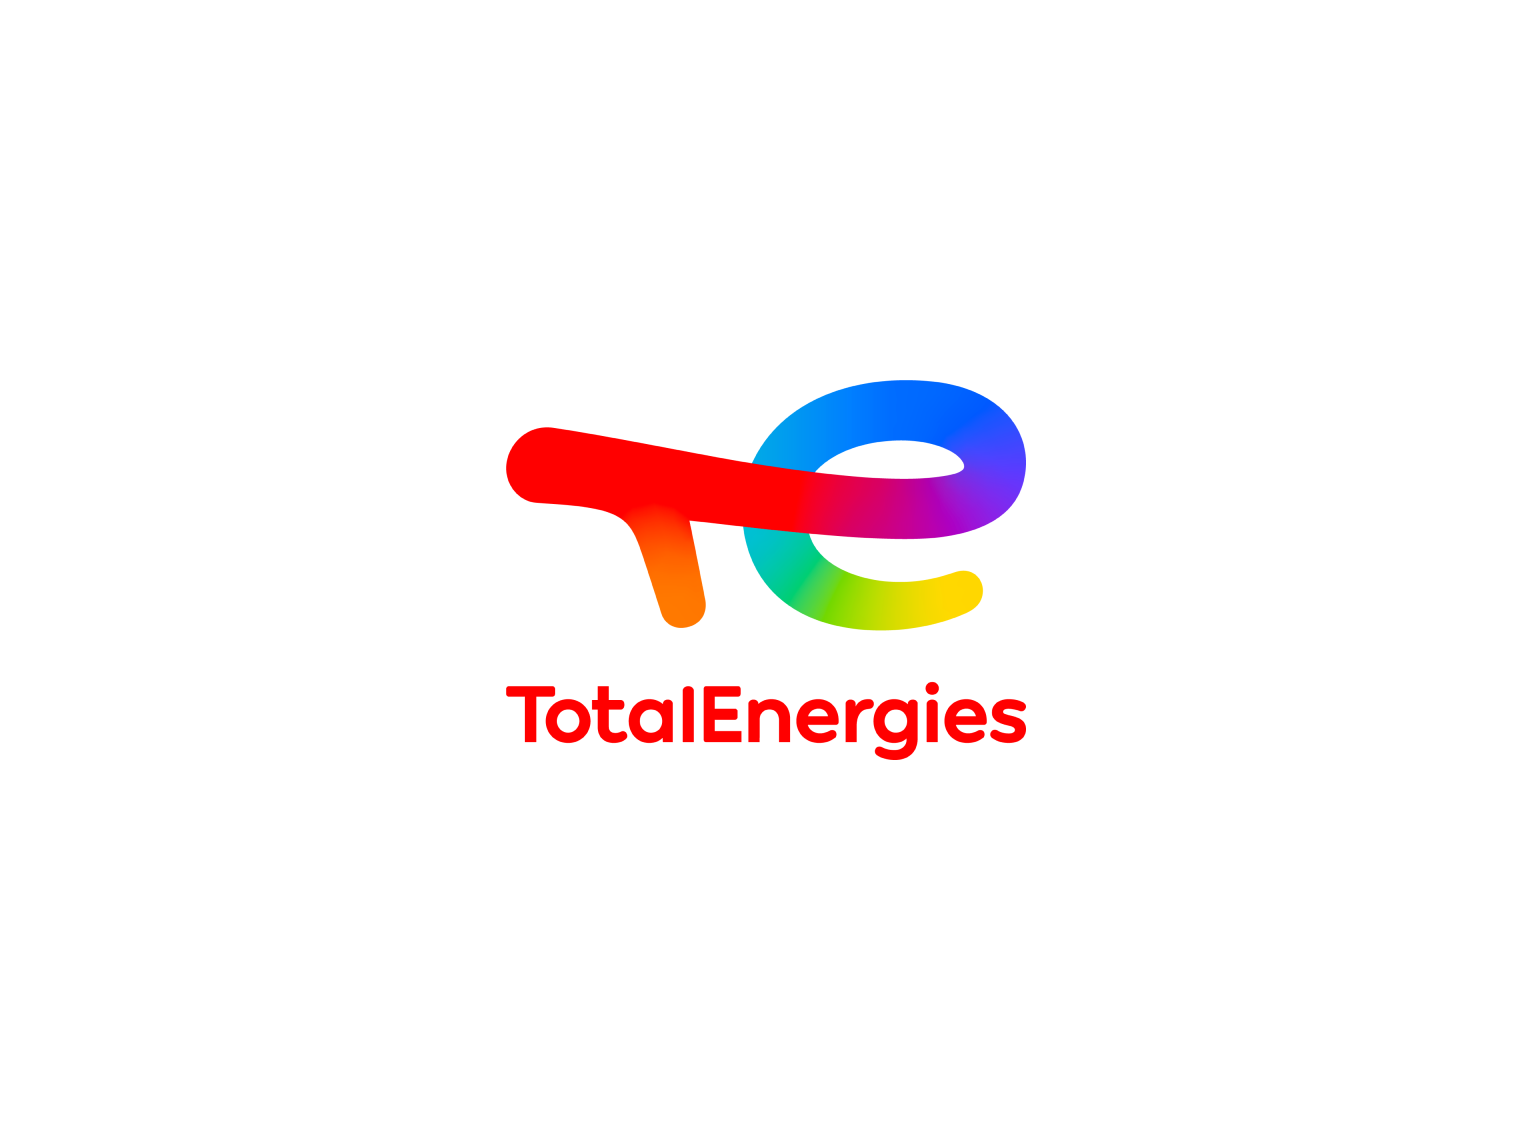 TotalEnergies Global Homepage - Renewables and Electricity, Natural Gas and  Green Gases, Oil and Biofuels